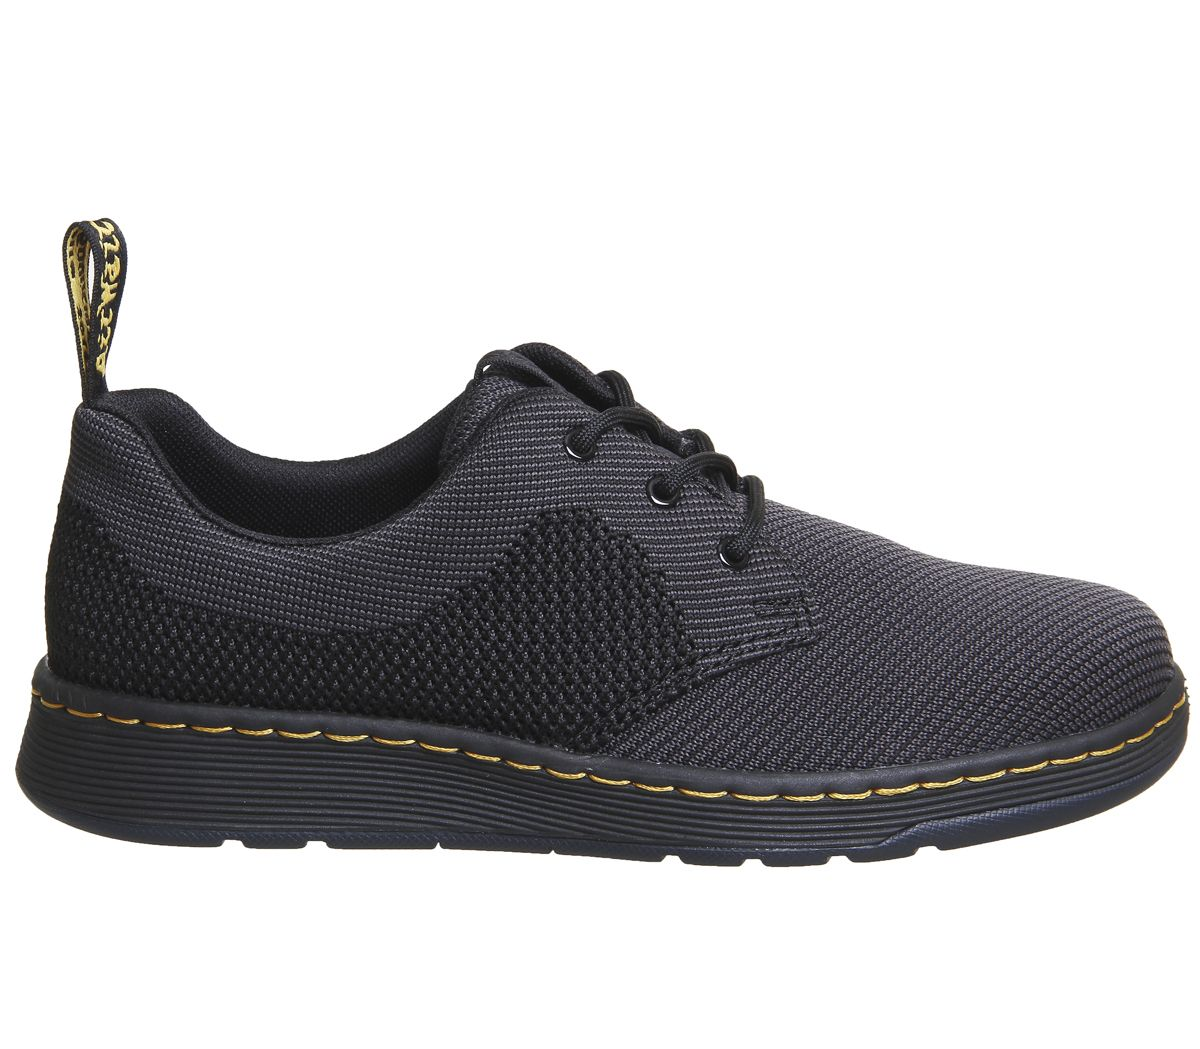 160c53cdd3f Dr. Martens Cavendish Knit Shoes Black Anthracite Knit - Flats